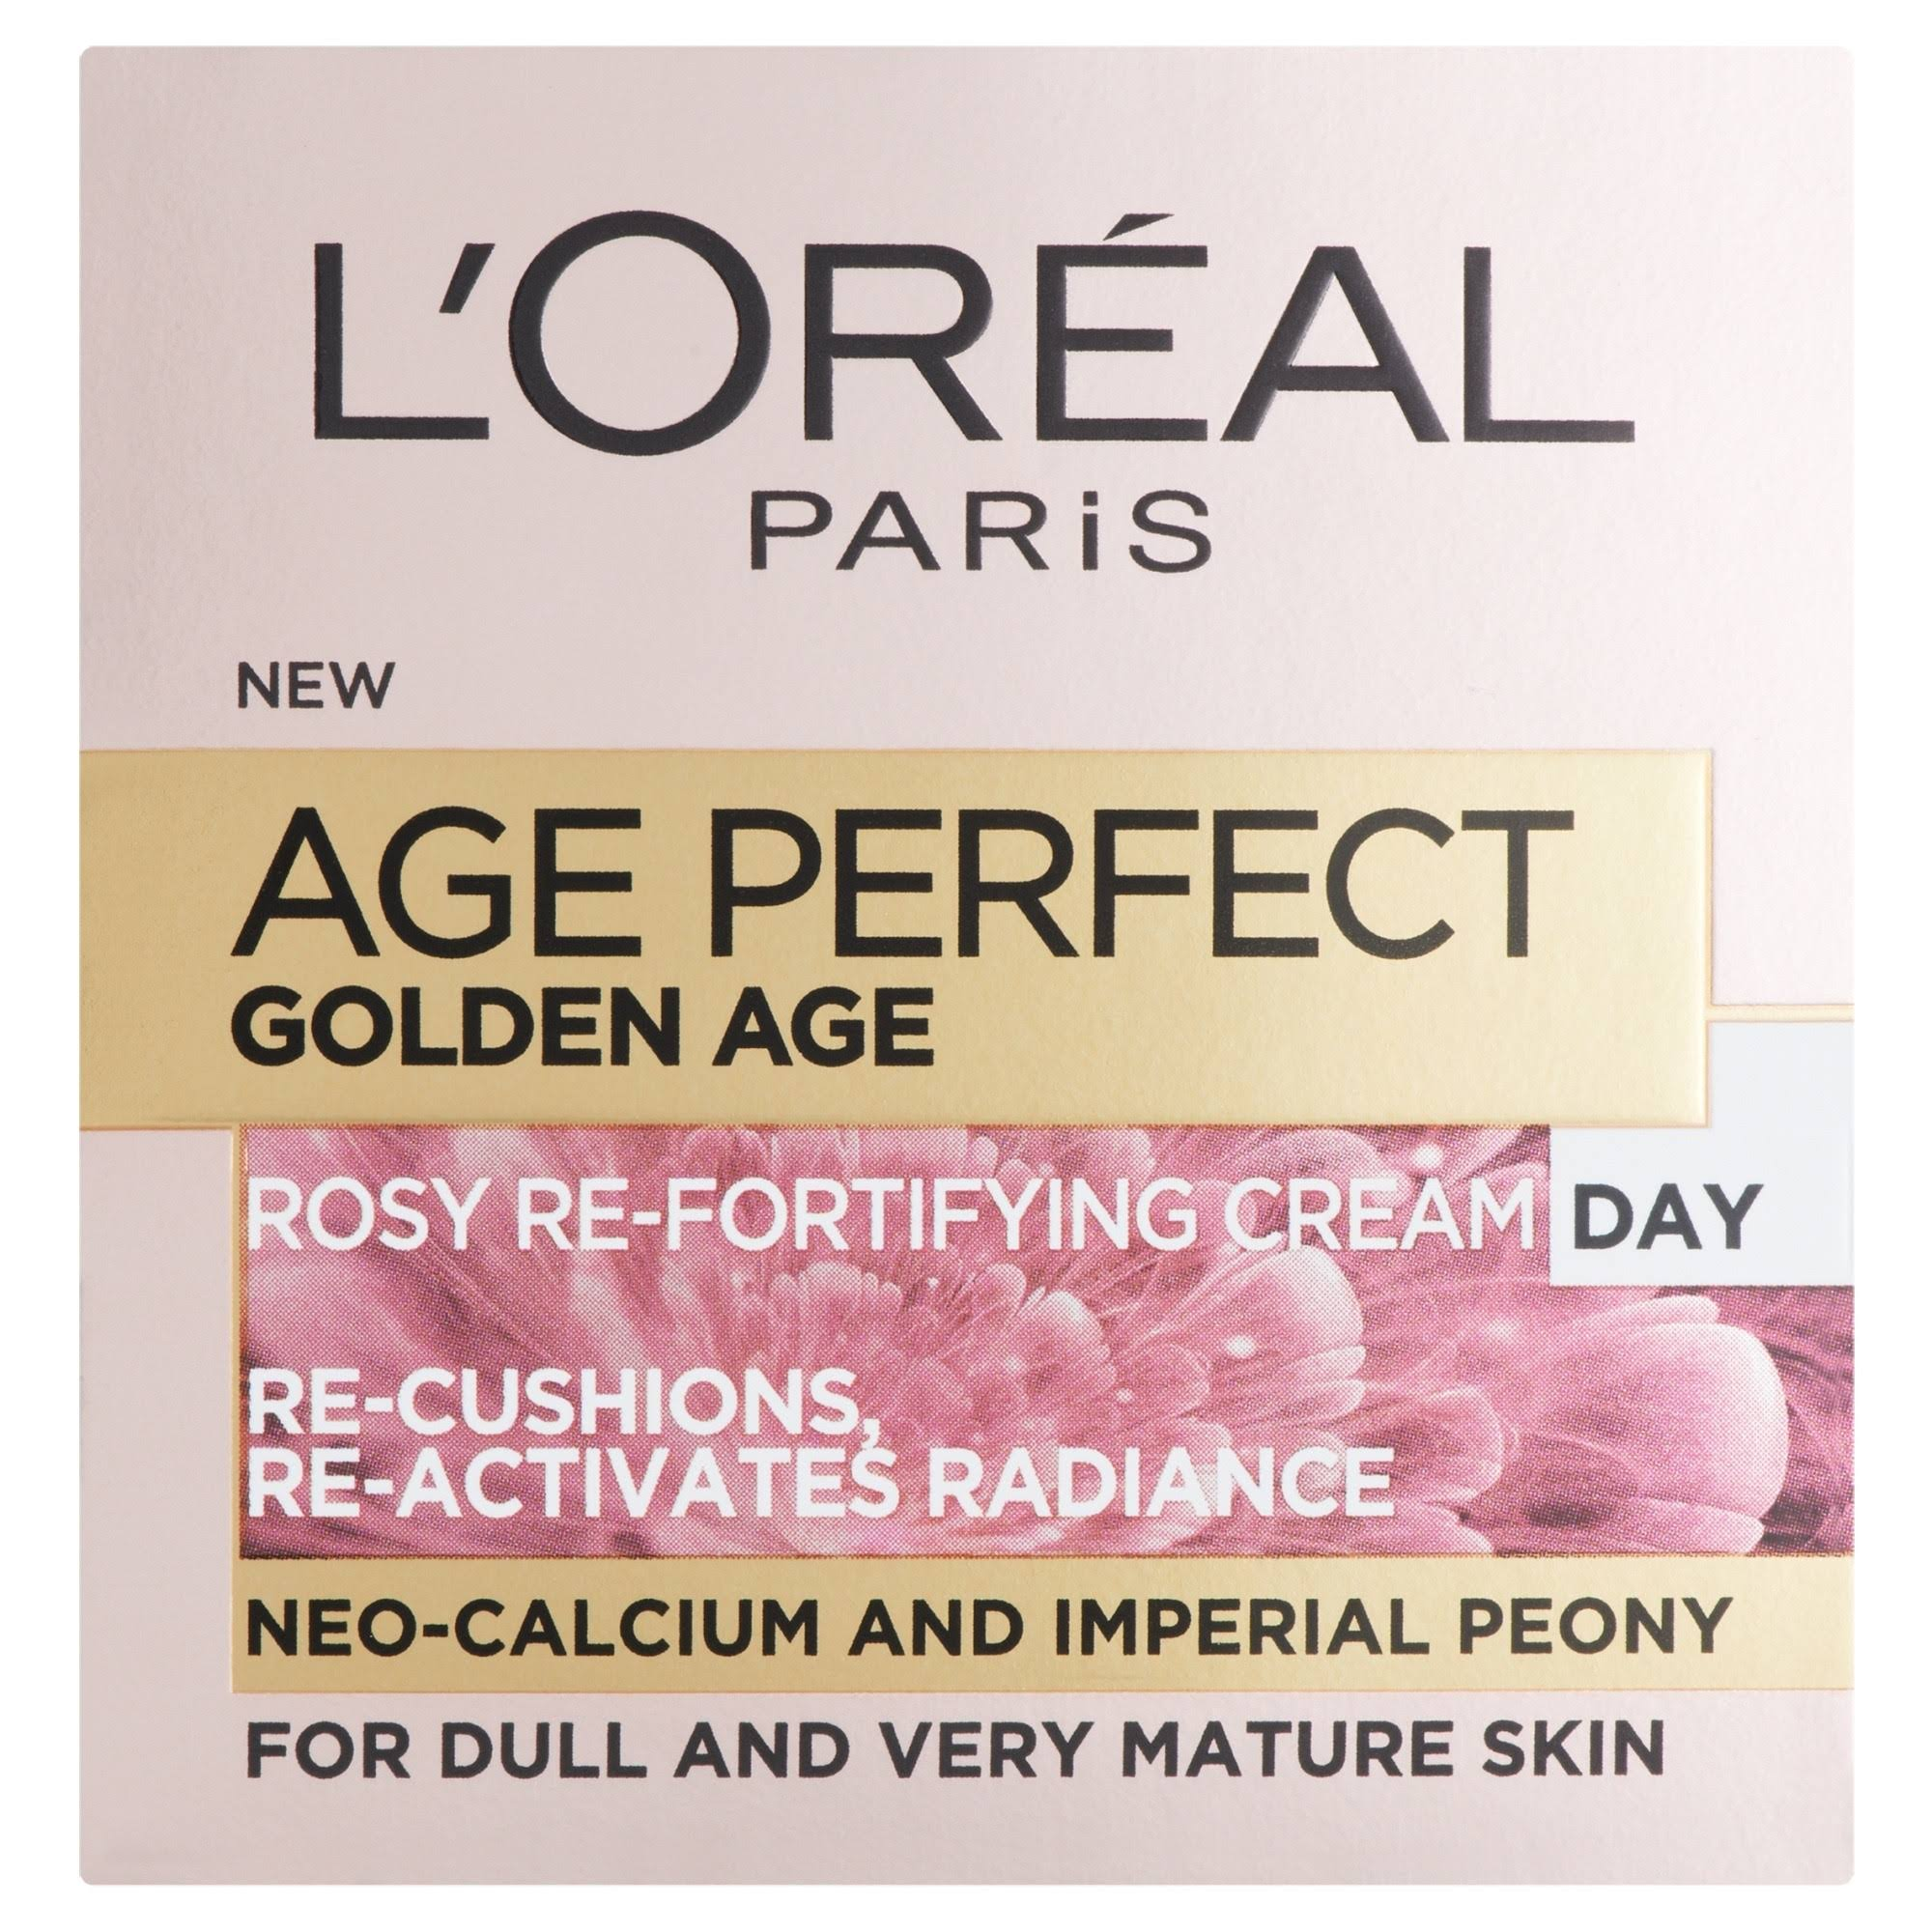 L'Oreal Paris Age Perfect Golden Age Day Cream - 50ml